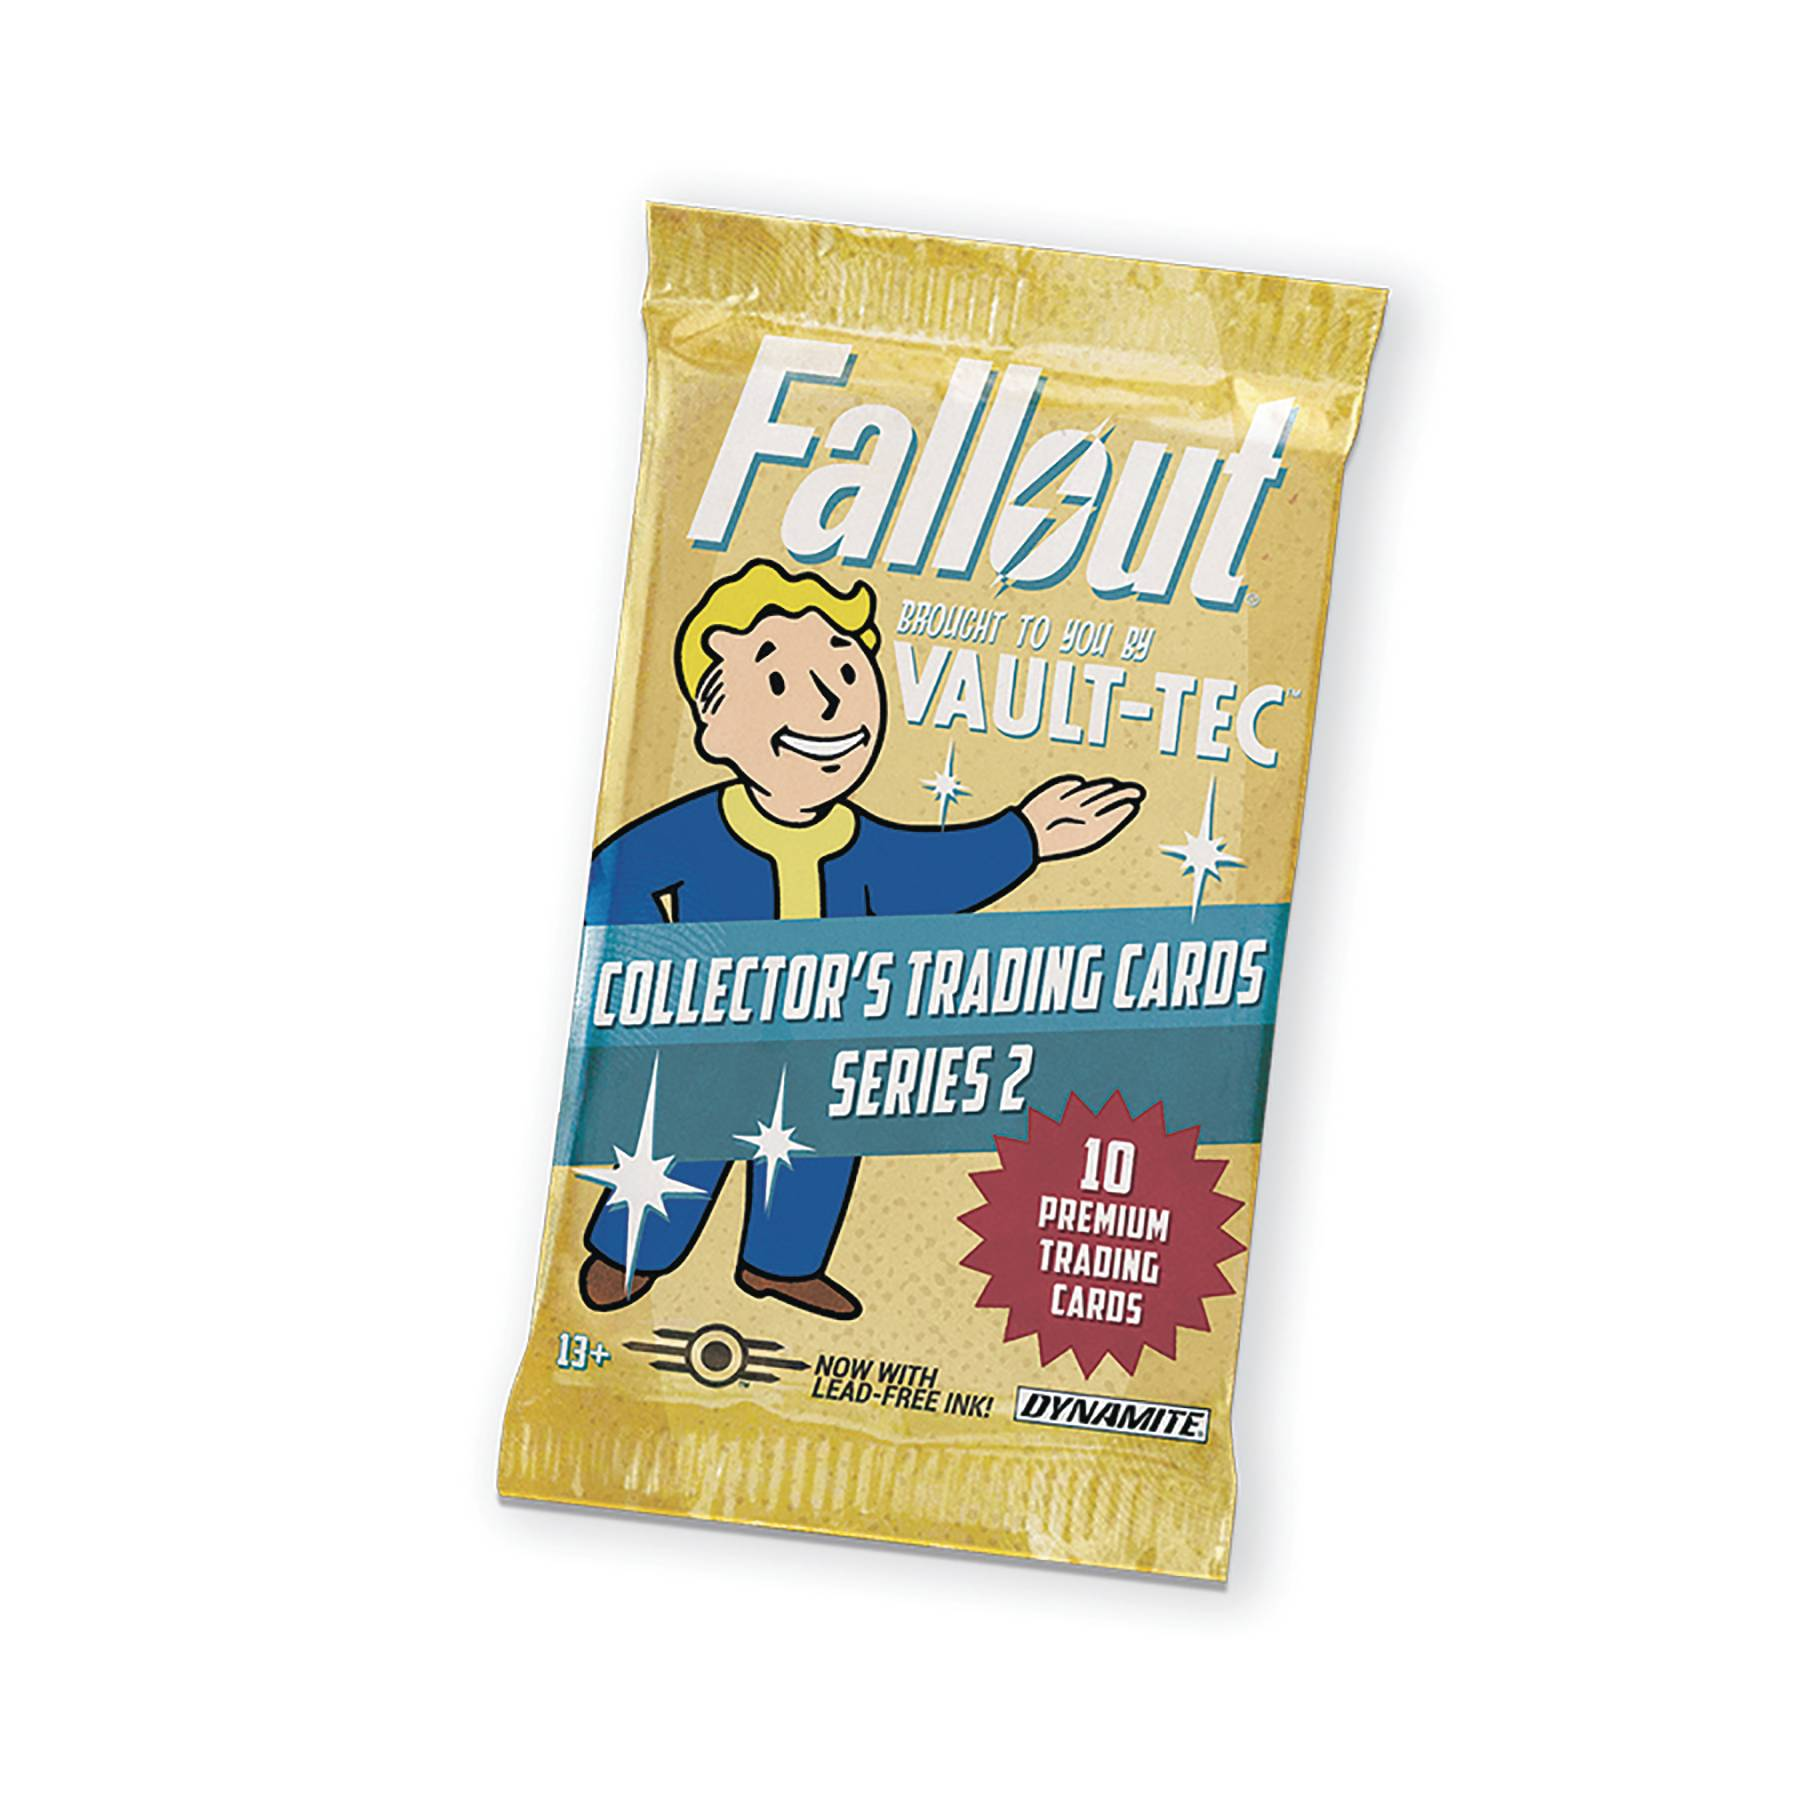 FALLOUT TRADING CARD FOIL PACK SERIES 2 CASE.jpg